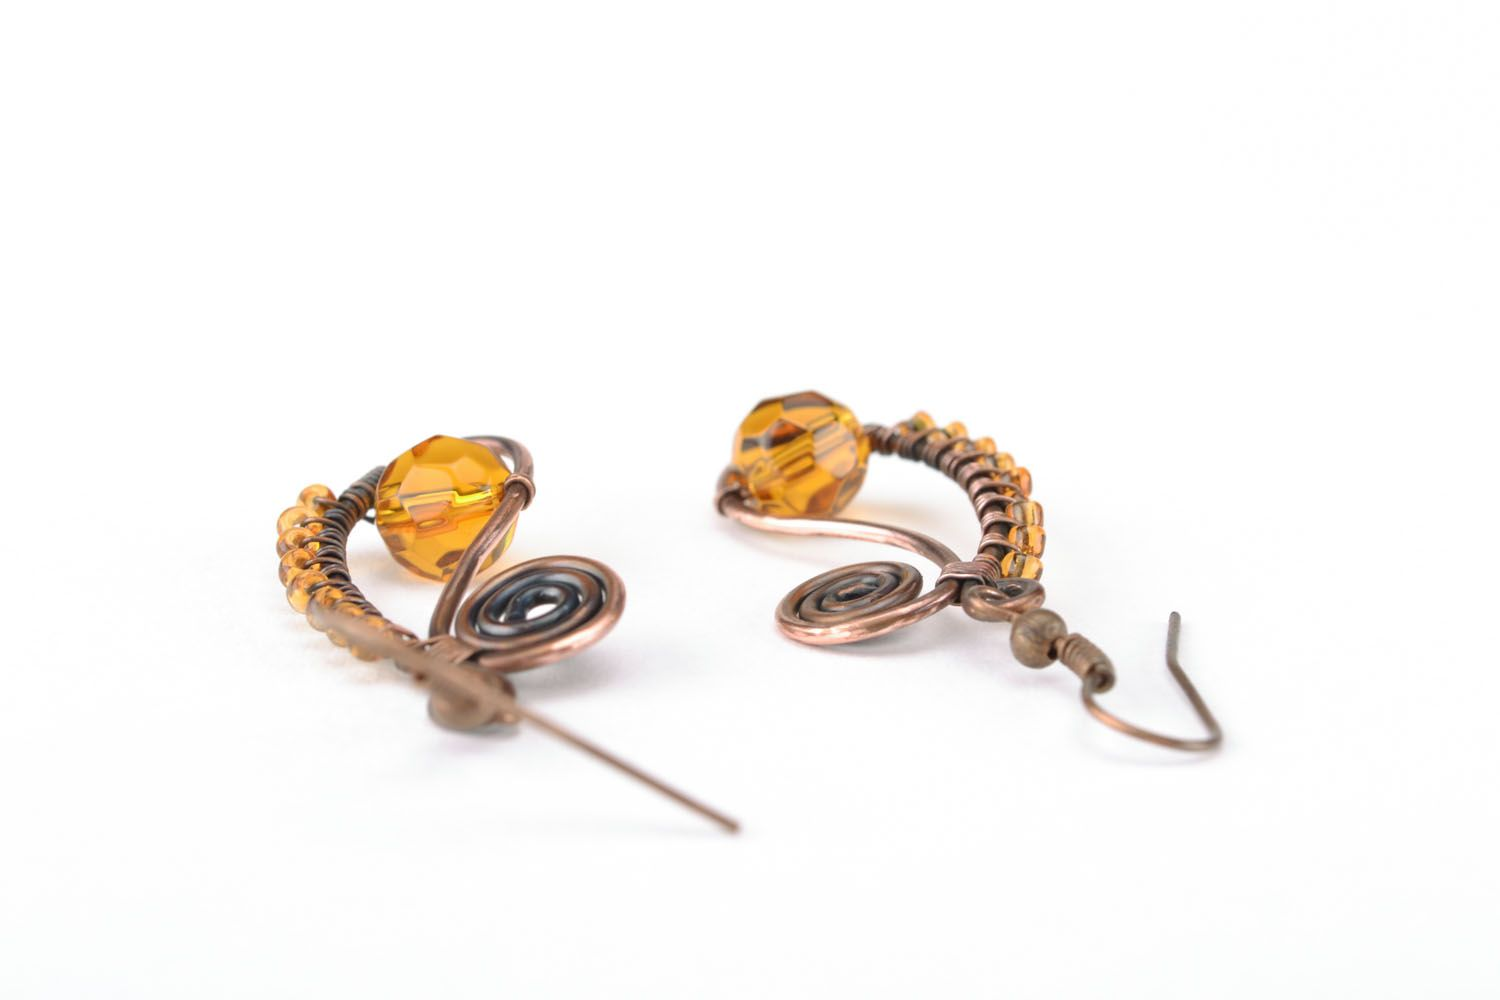 Earrings made of copper wire photo 2